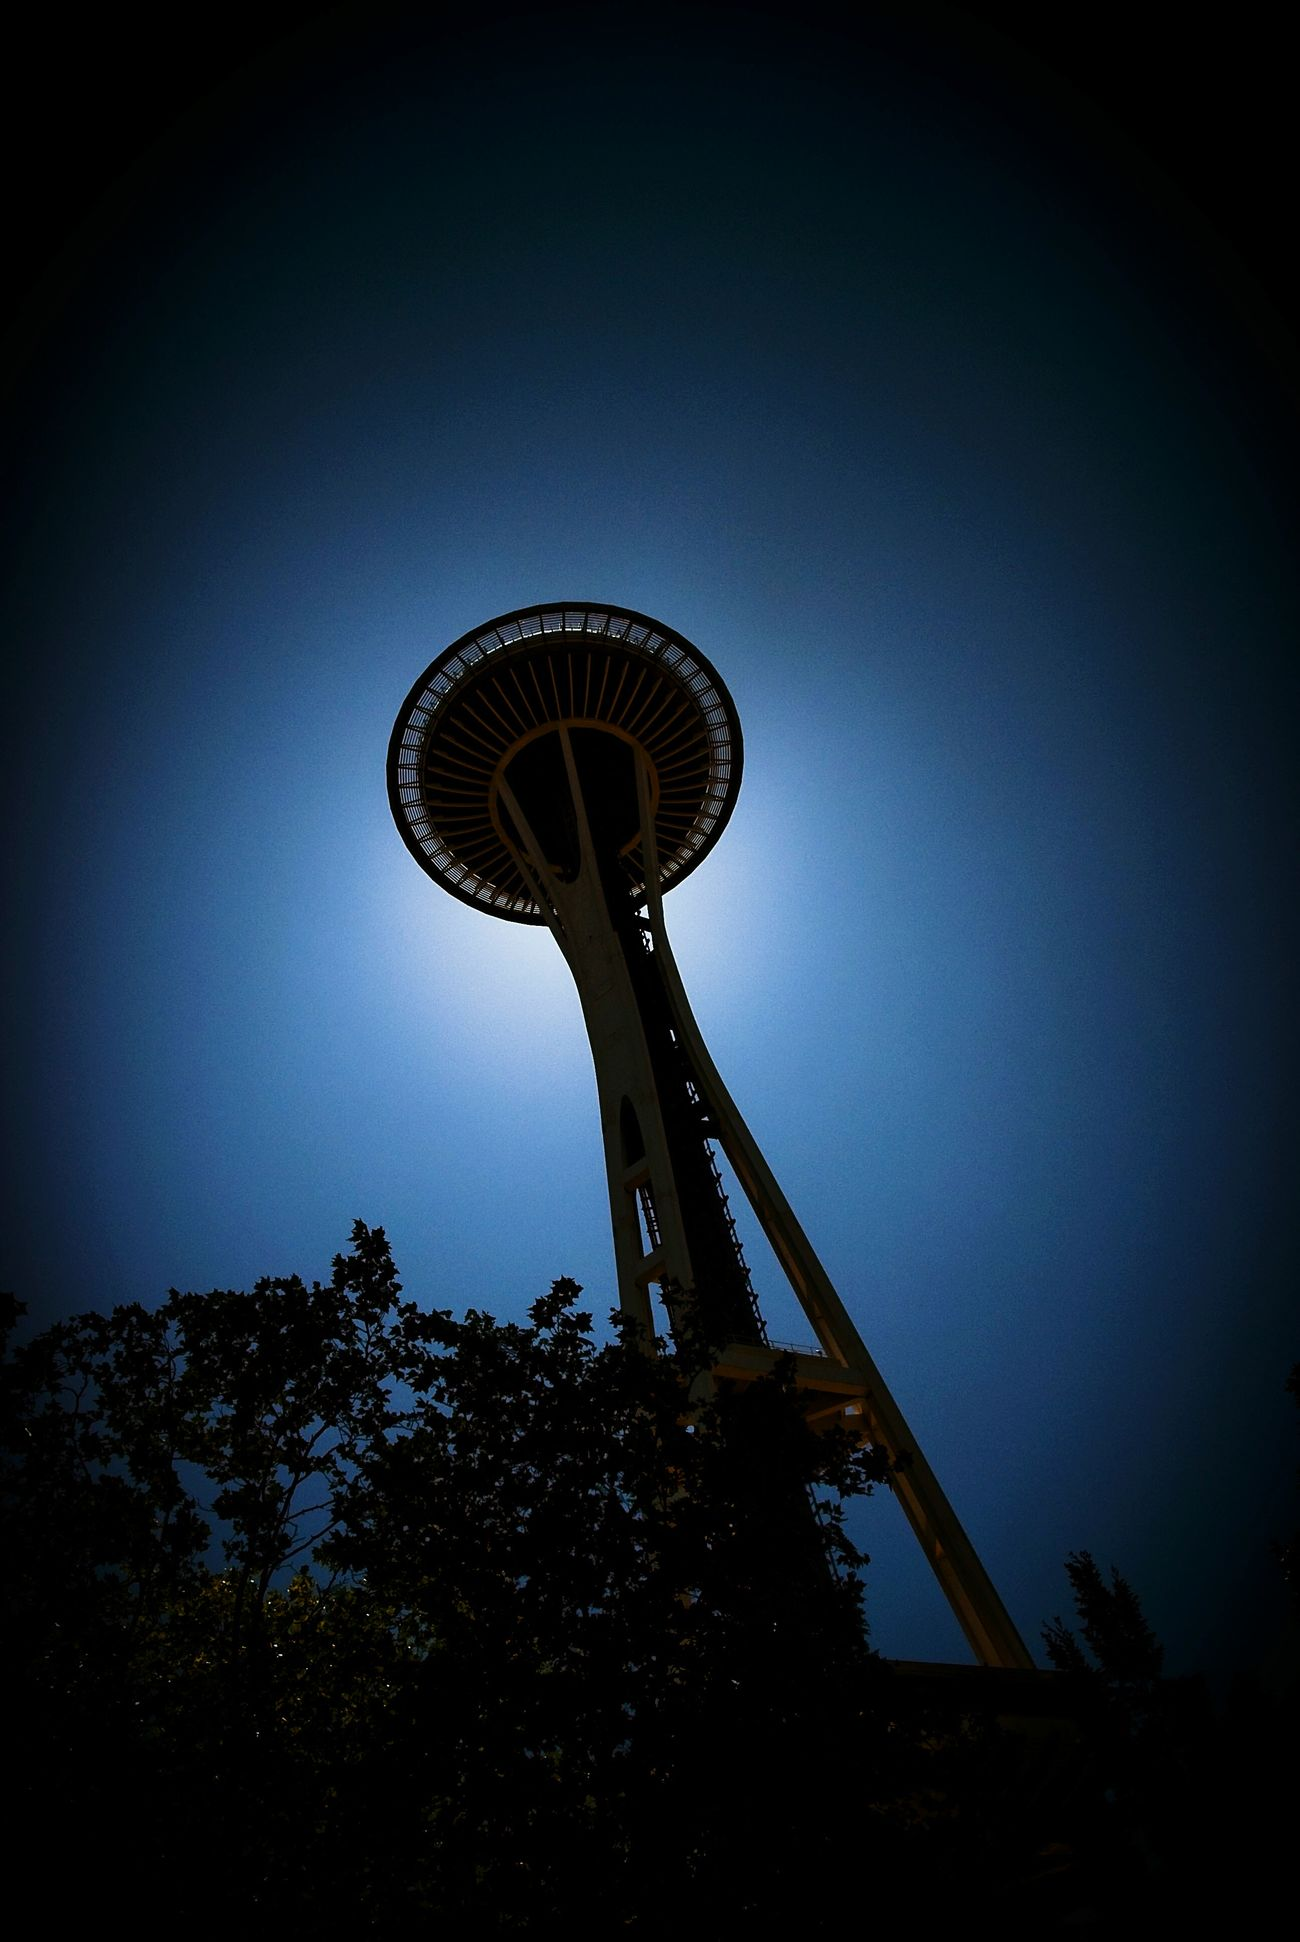 My Original Experiences was the first time i went to Seattle. I was greeted with friendly people, amazing food and even better seafood! Seattle Space Needle